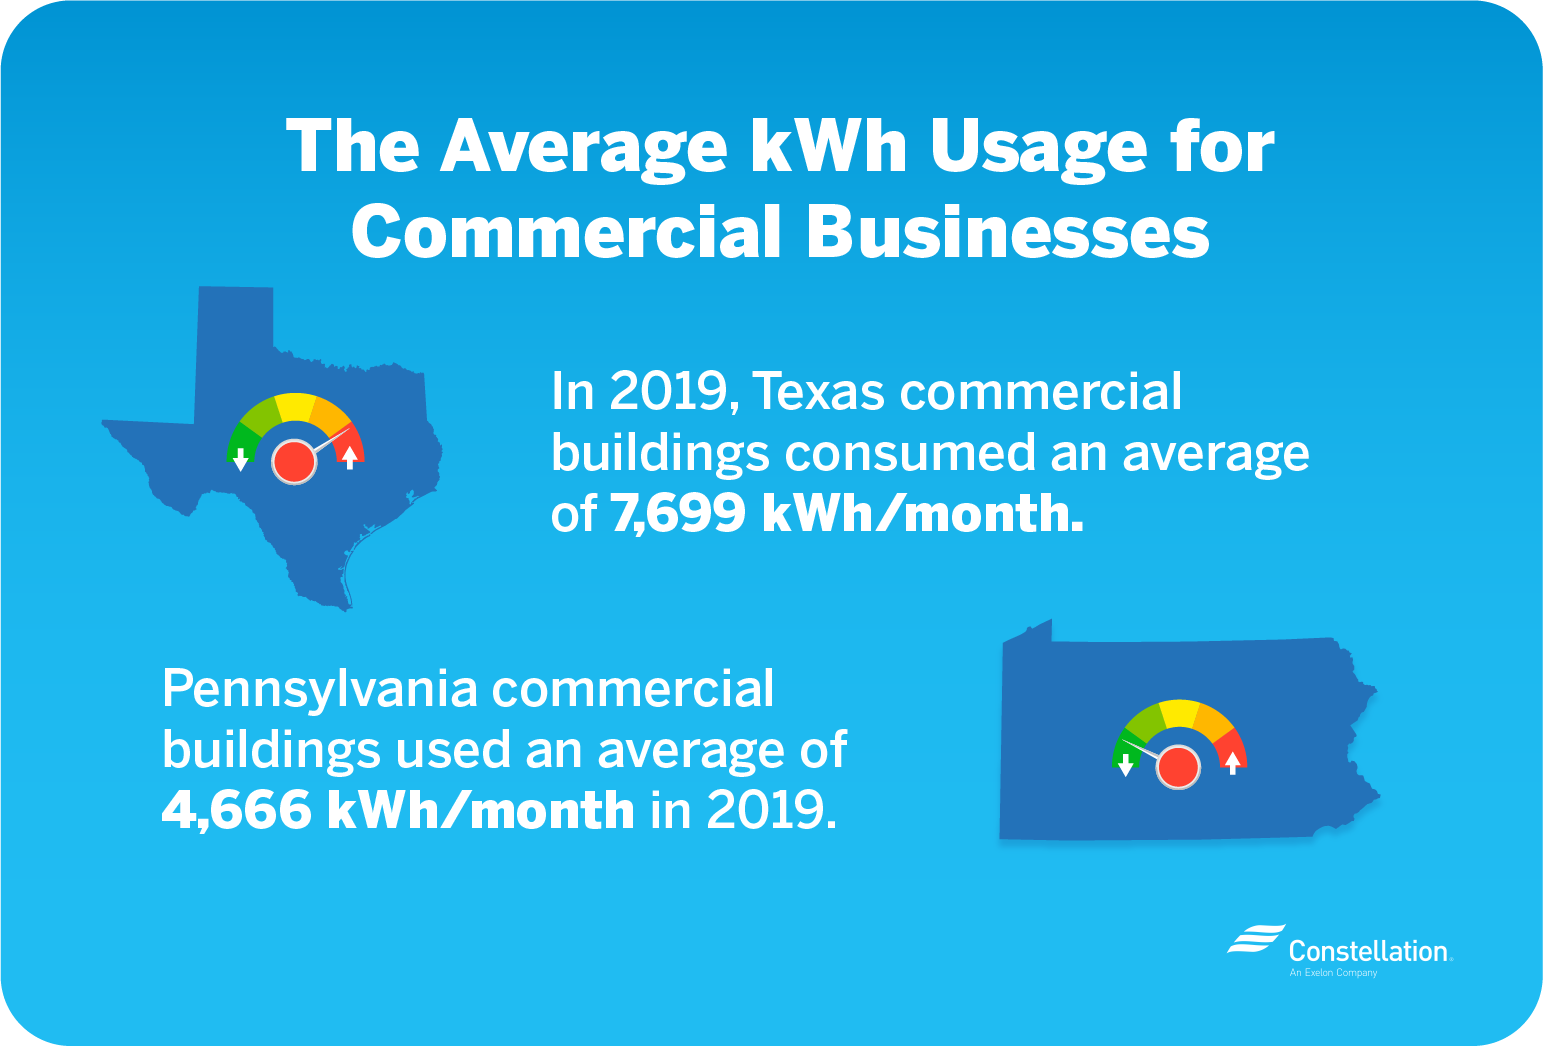 The Average kWh Usage for Small Businesses